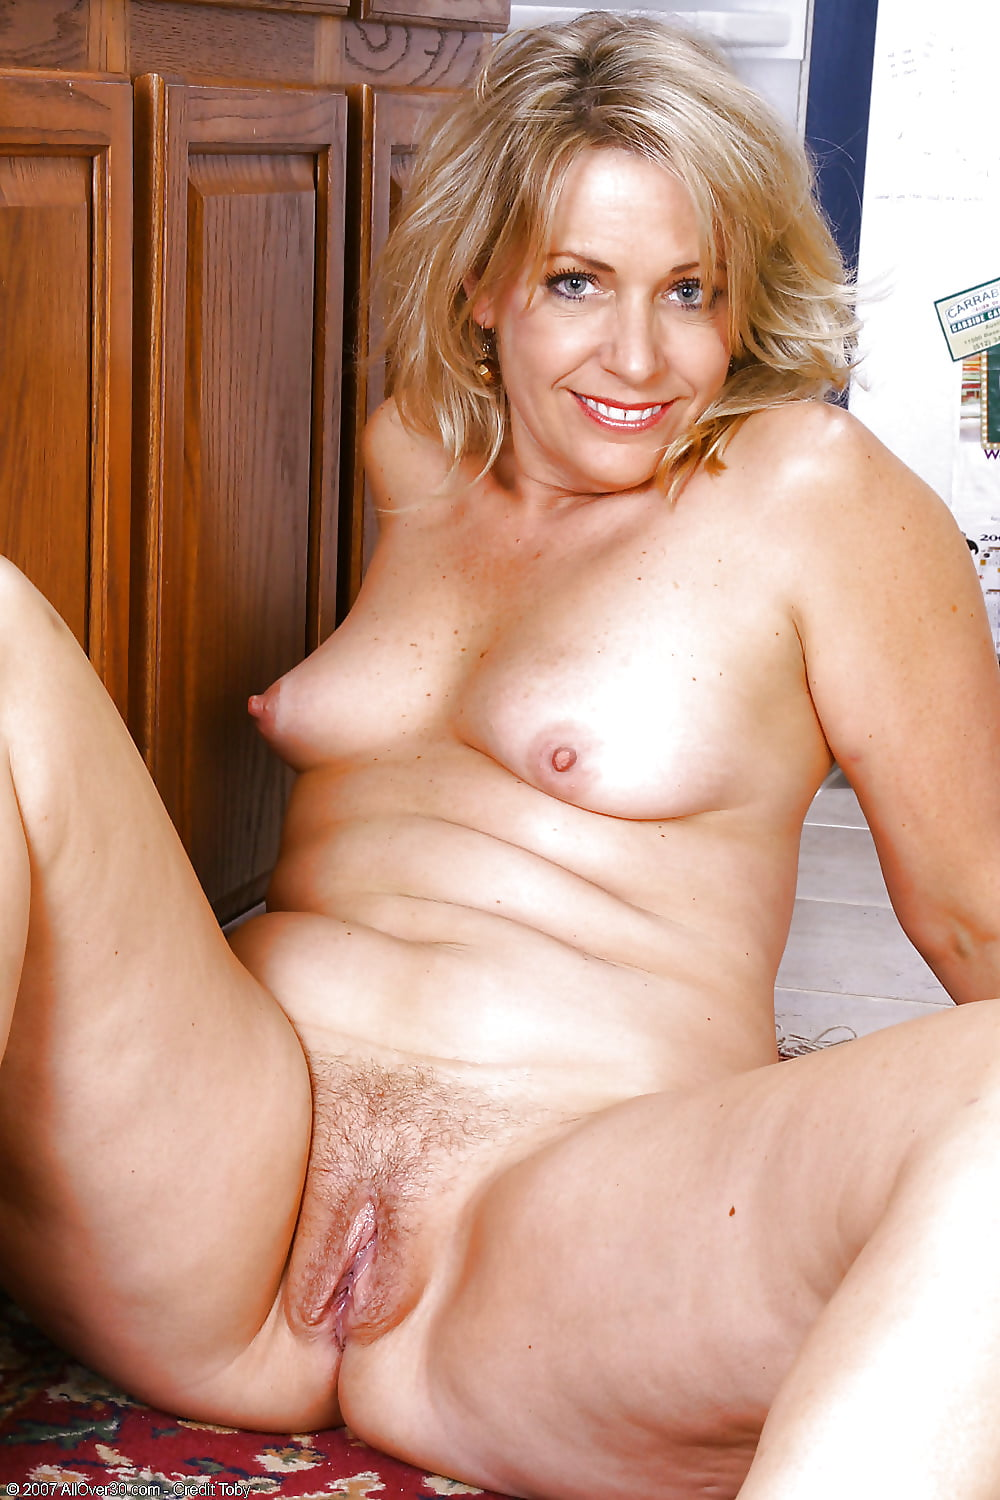 Women sixty years old naked pictures — photo 5